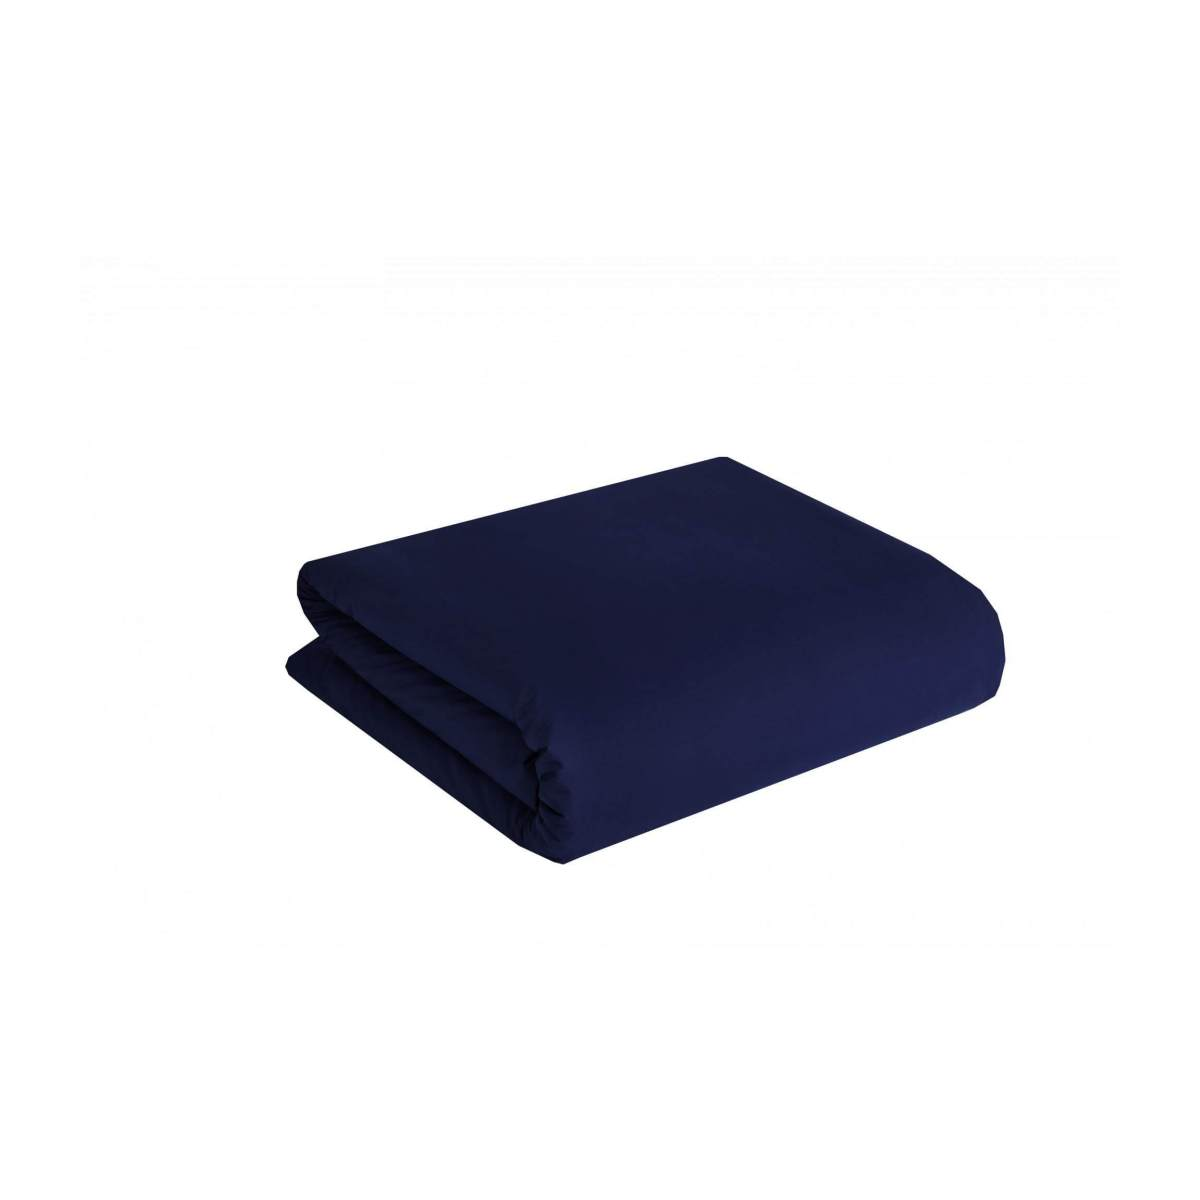 Duvet cover 200x200, dark blue n°4